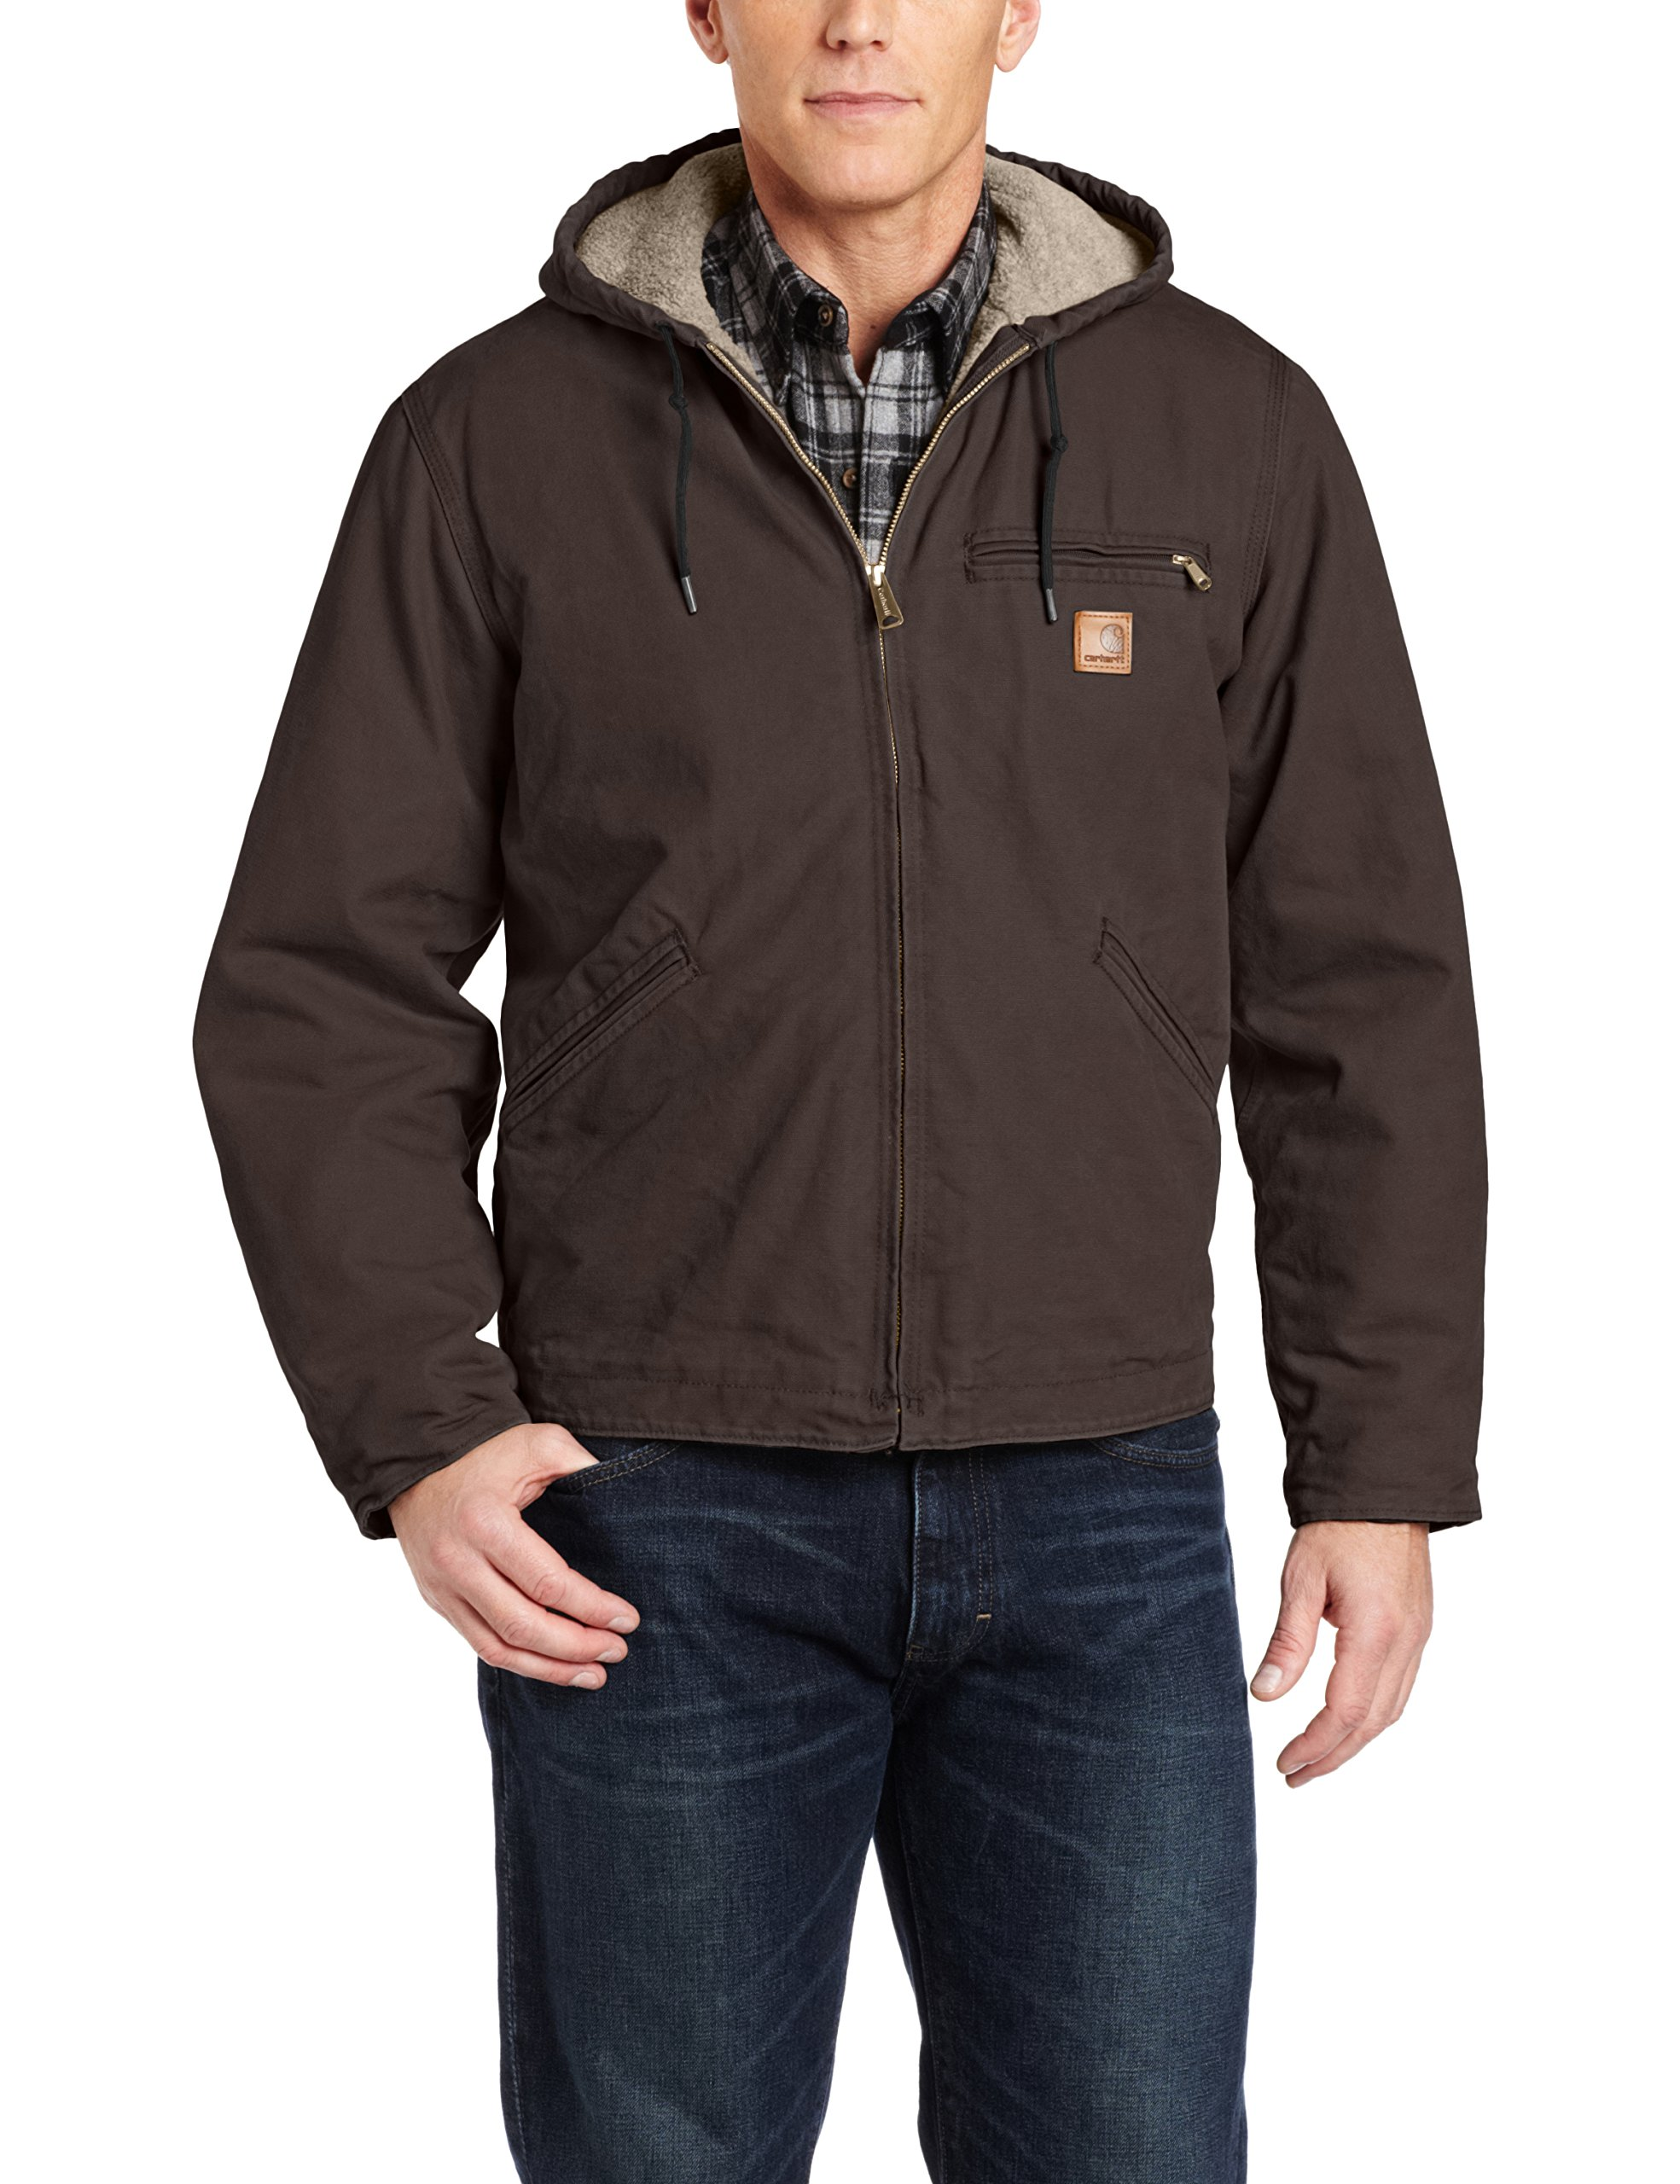 Carhartt Men's Big & Tall Sherpa Lined Sandstone Sierra Jacket J141,Dark Brown,Large Tall